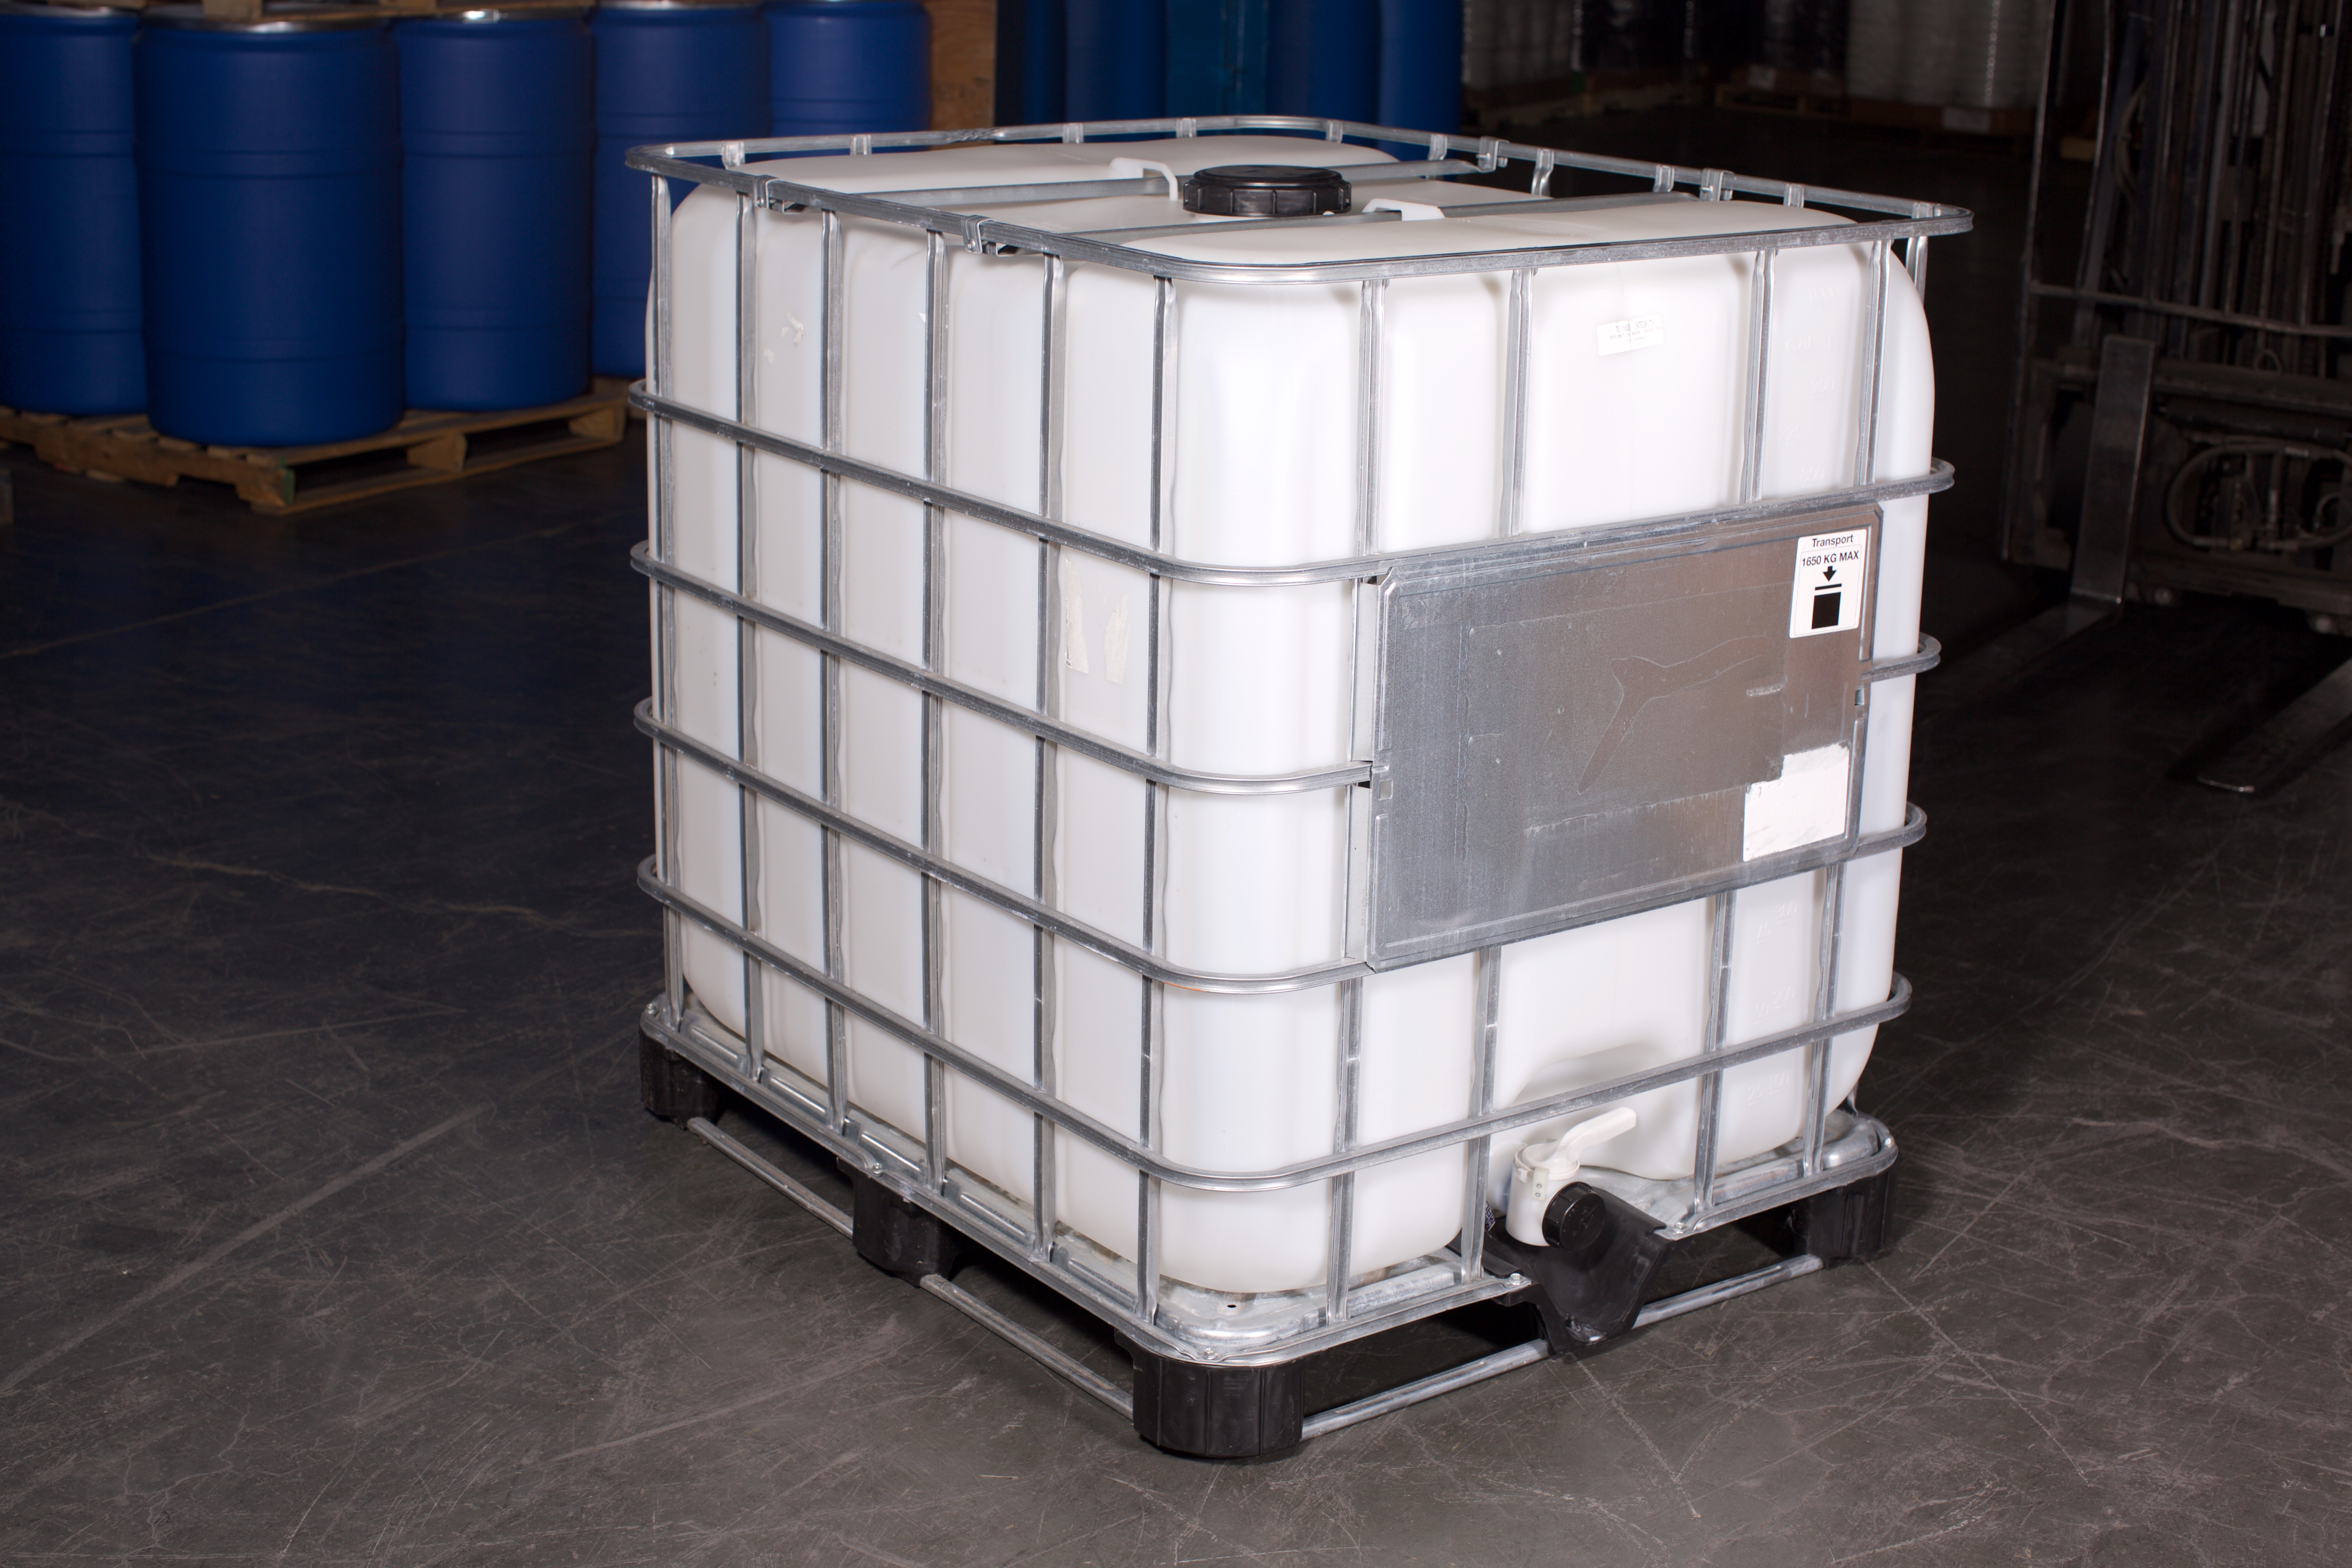 TOTE (IBC), HIGH DENSITY POLYETHYLENE, RECONDITIONED, 1000